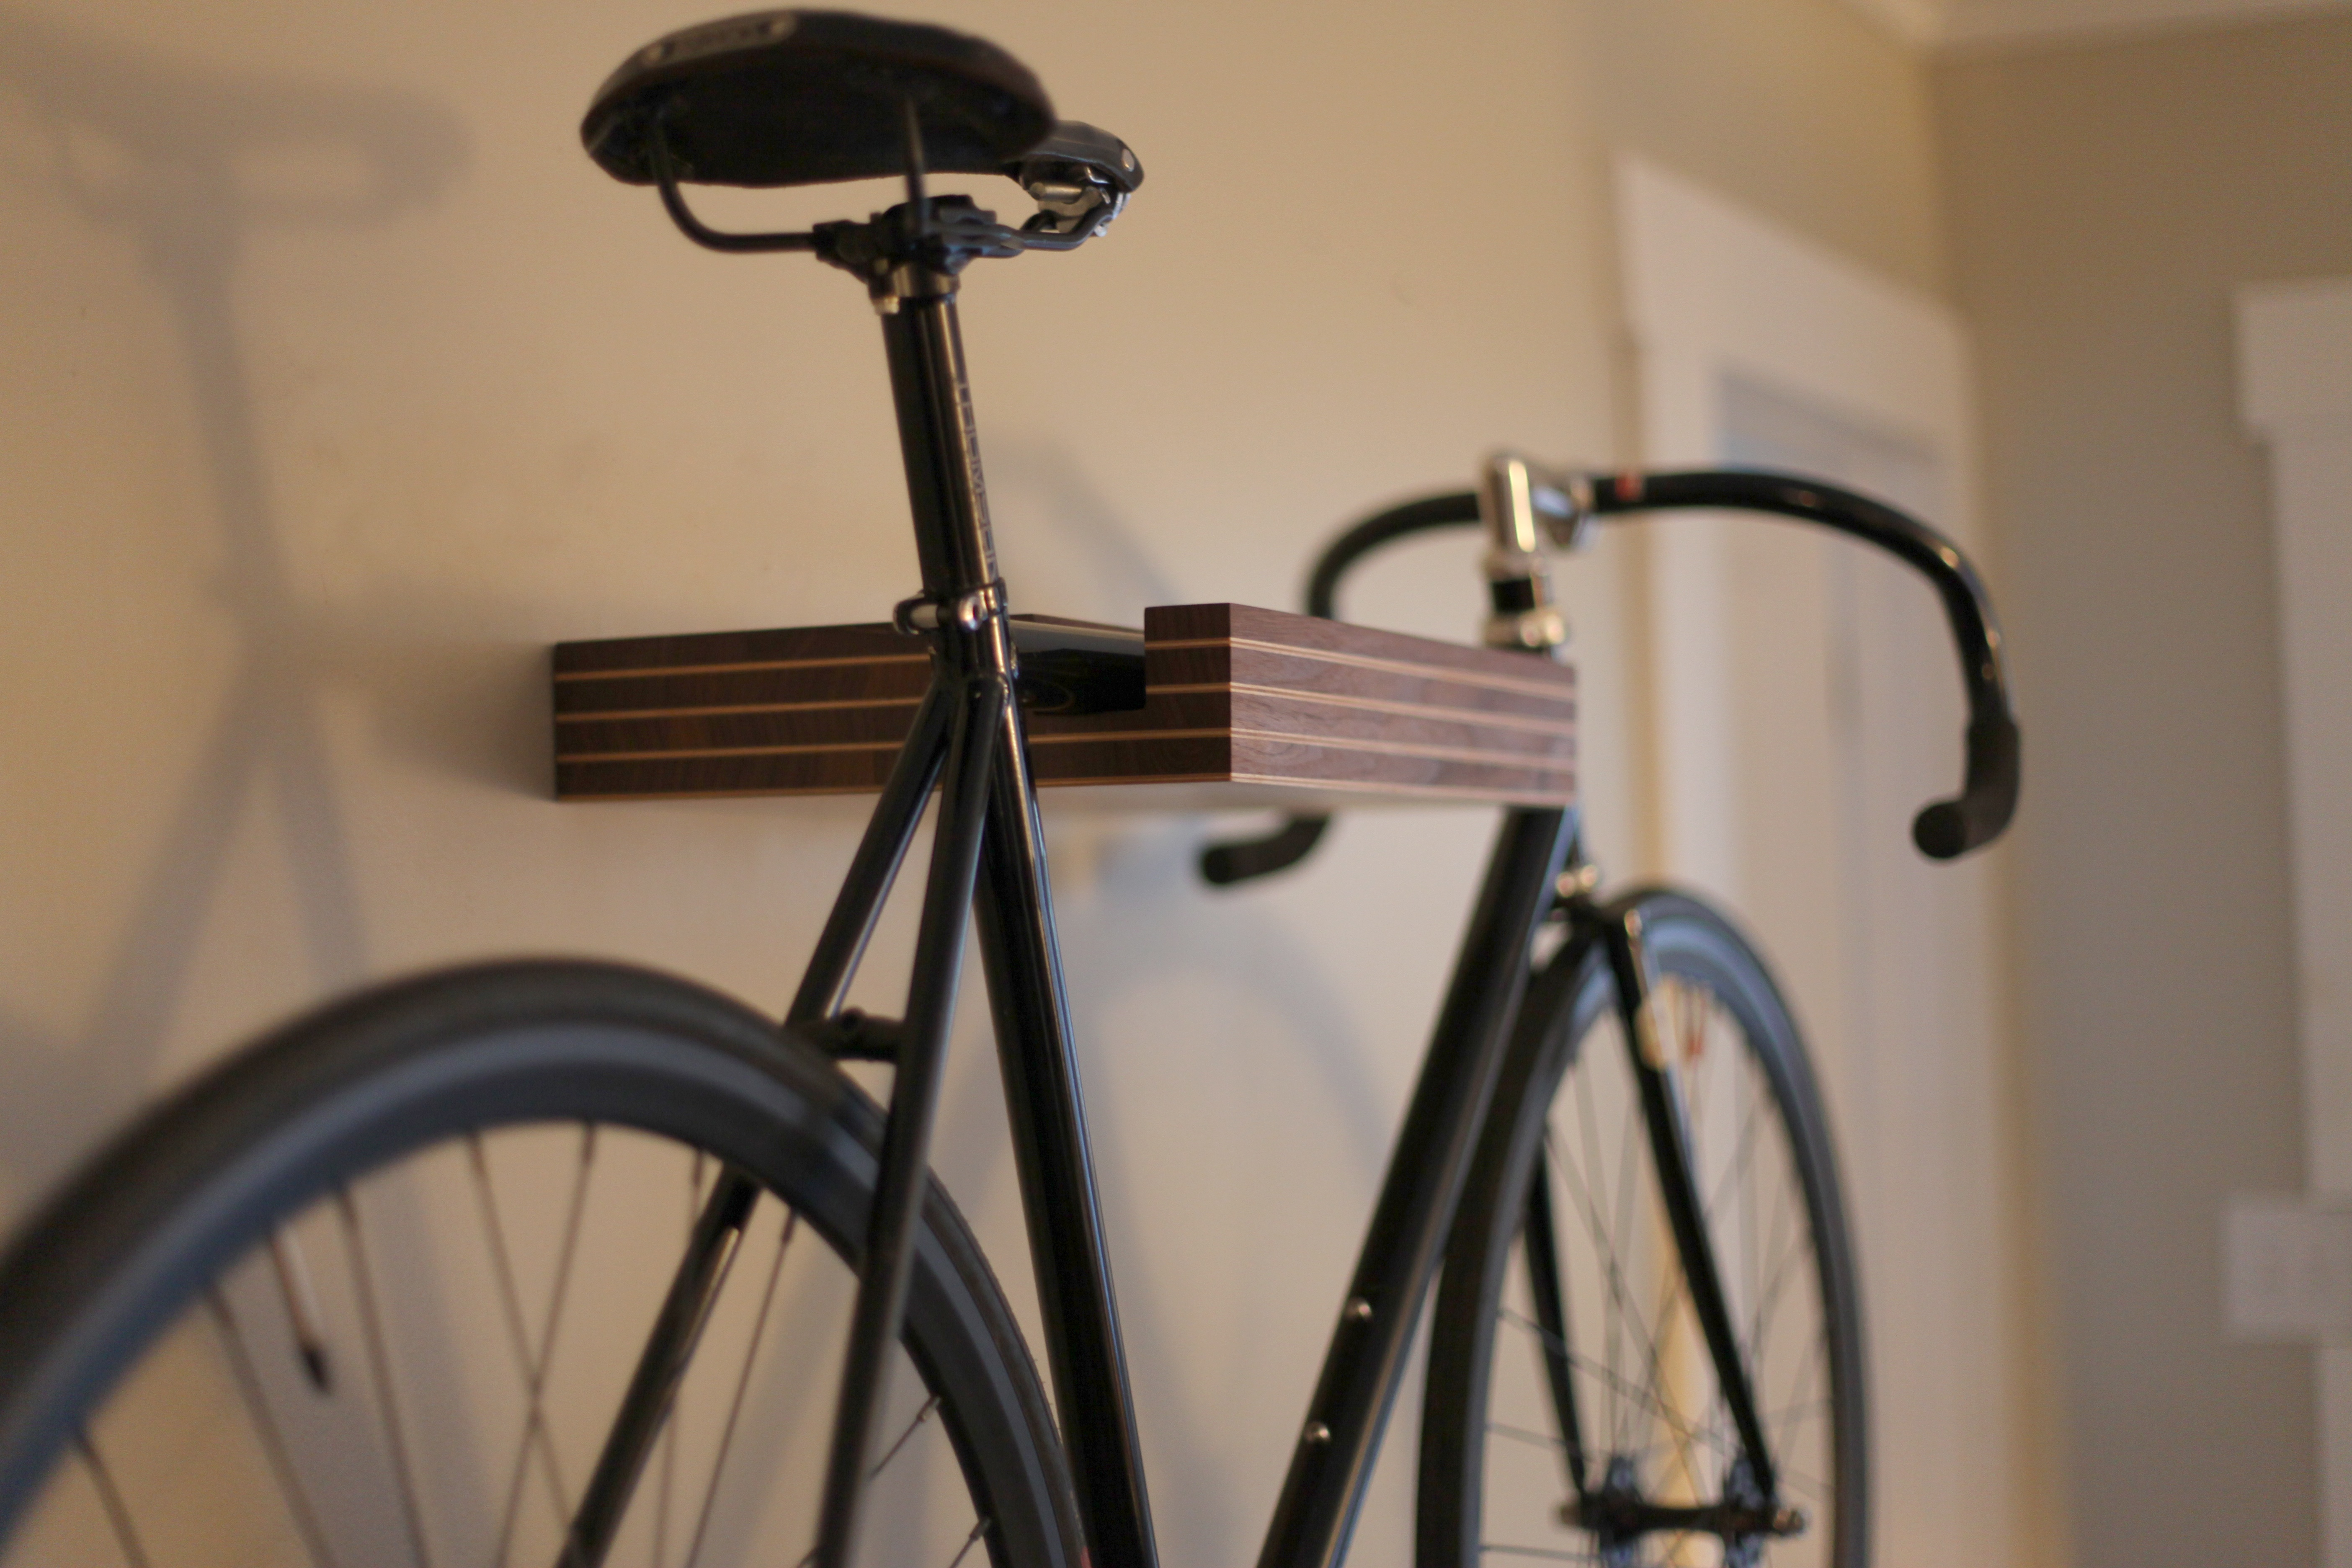 Look jeremy s bicycle rack apartment therapy - Pinstripe Bike Shelf The Pinstripe Bike Shelf Is Designed To Display Your Bike As A Piece Of Art While Still Looking Like A Simple Floating Shelf